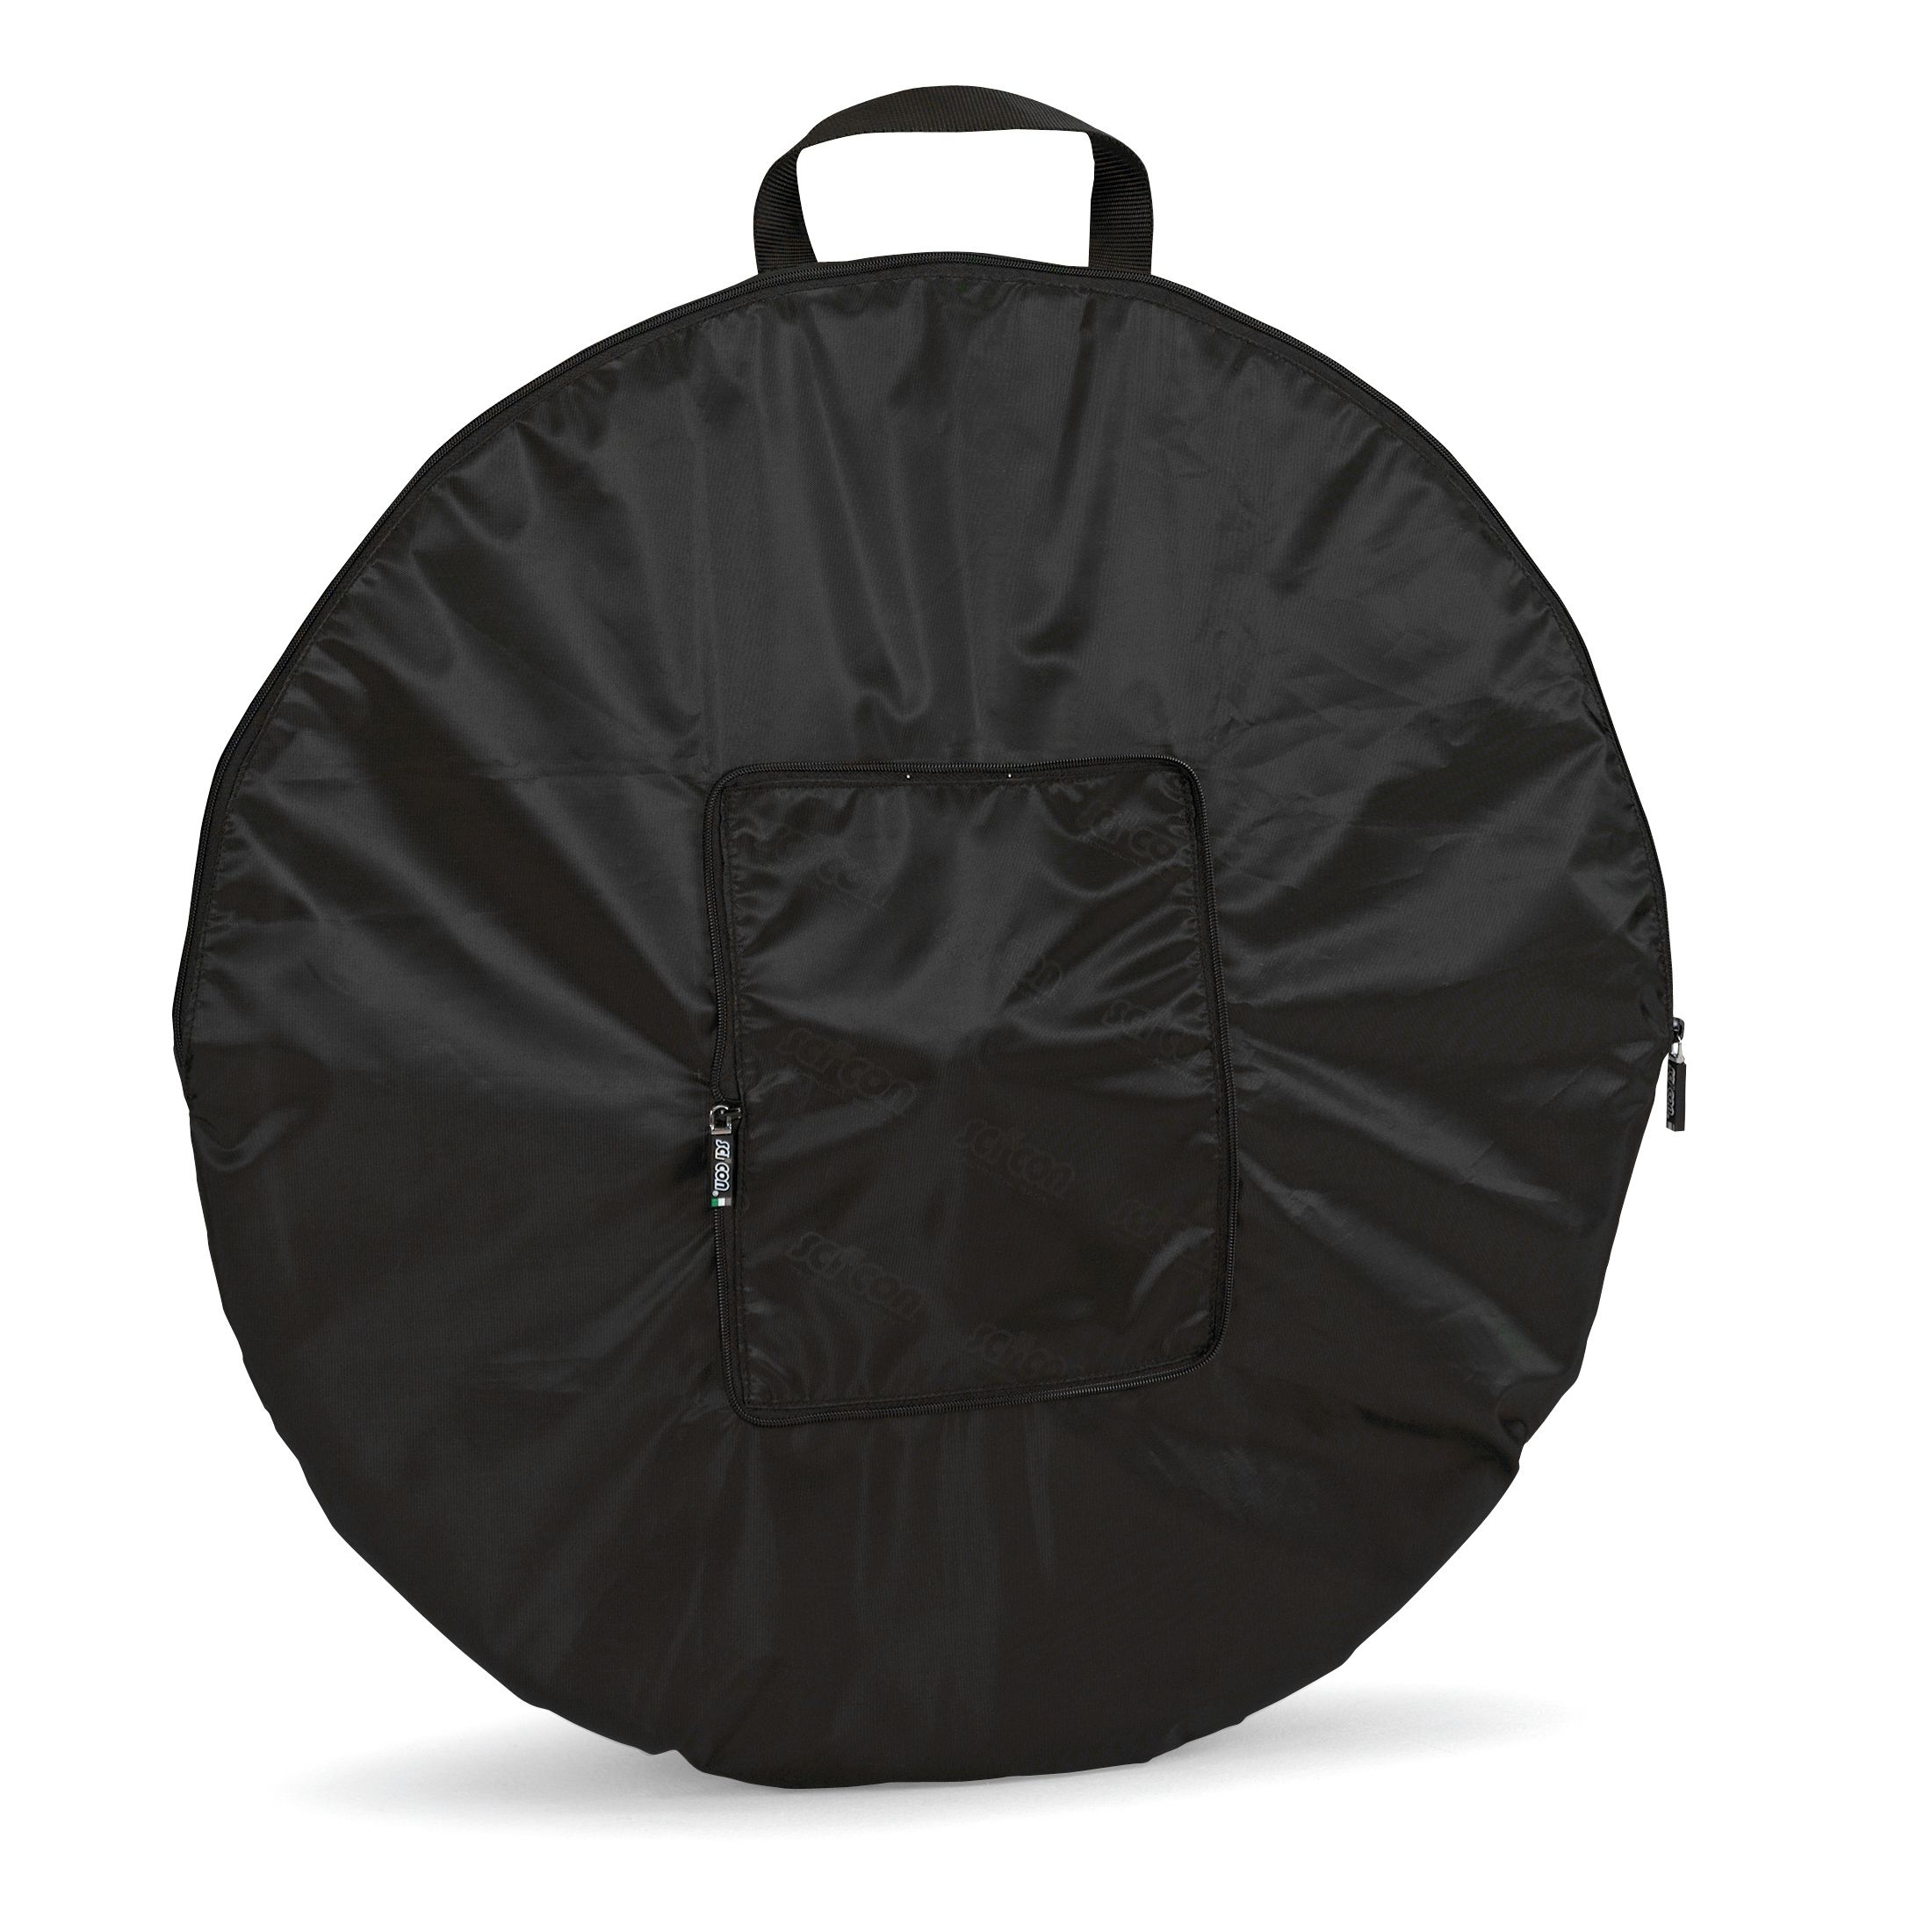 Pocket Wheel Bag! Ultralight wheel bag for easy storage! Keep those weapons scratch free!